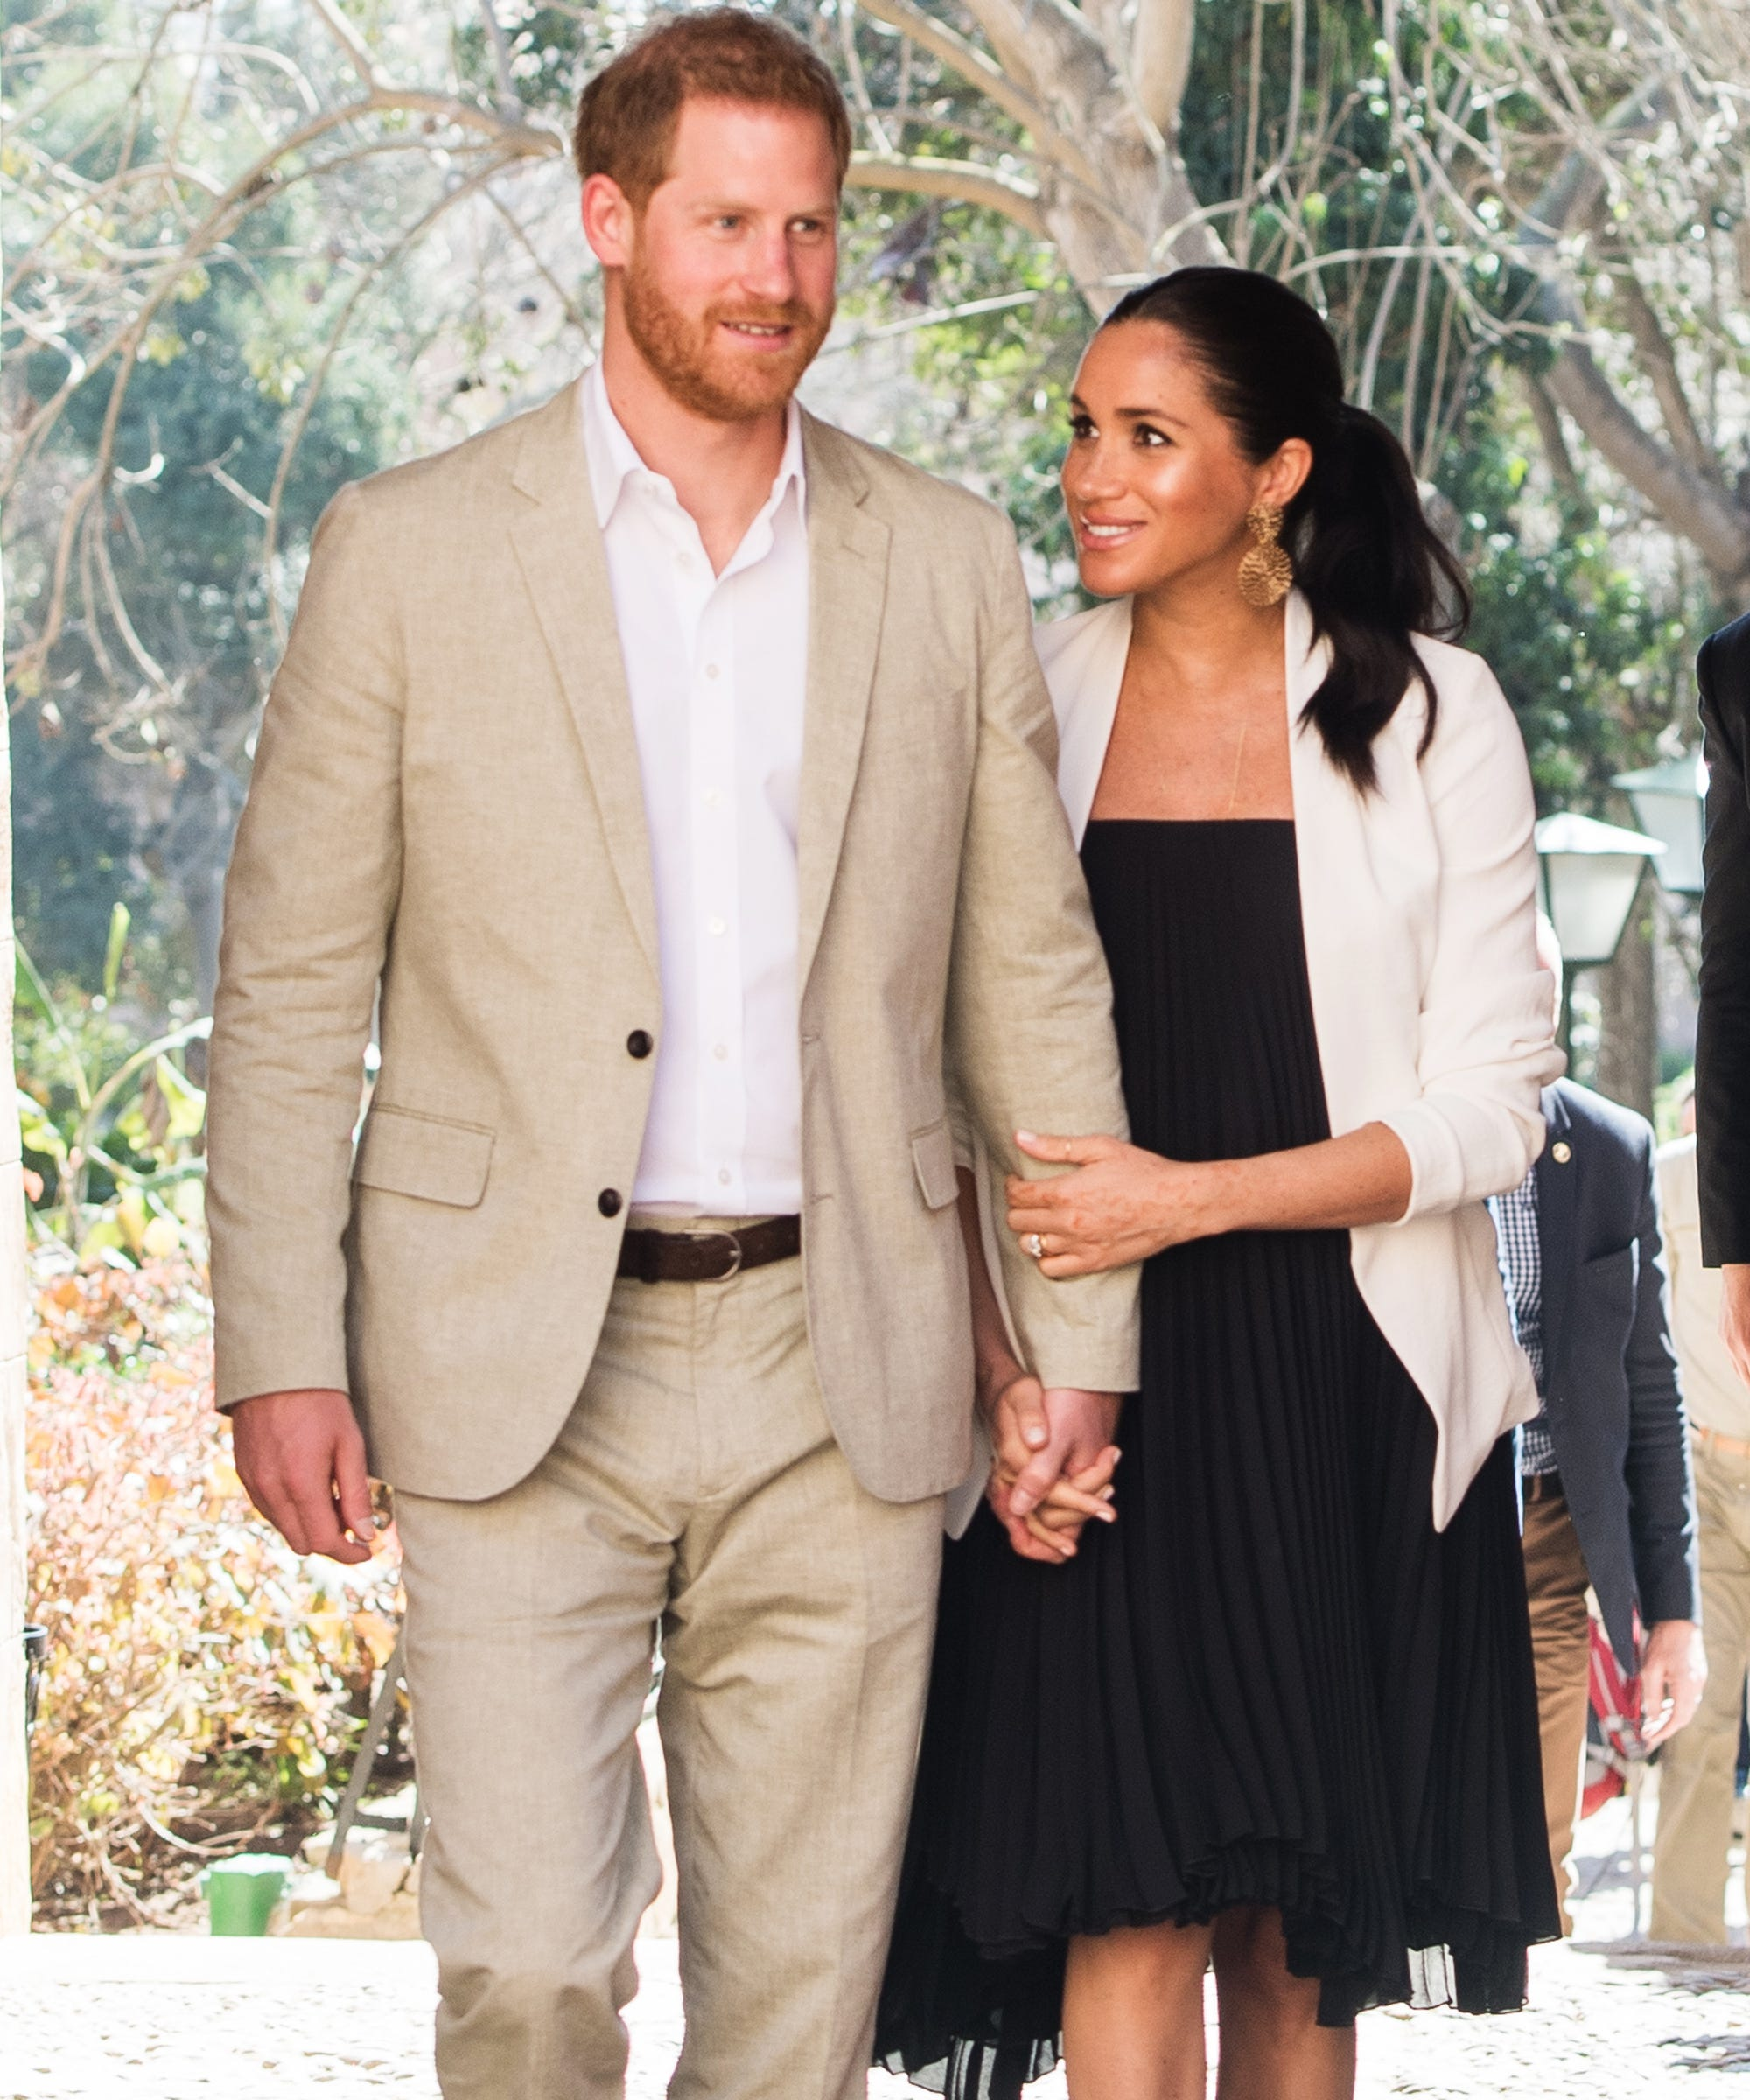 Celebs Are Coming To Meghan Markle & Prince Harry's Defense After Private Jet Backlash